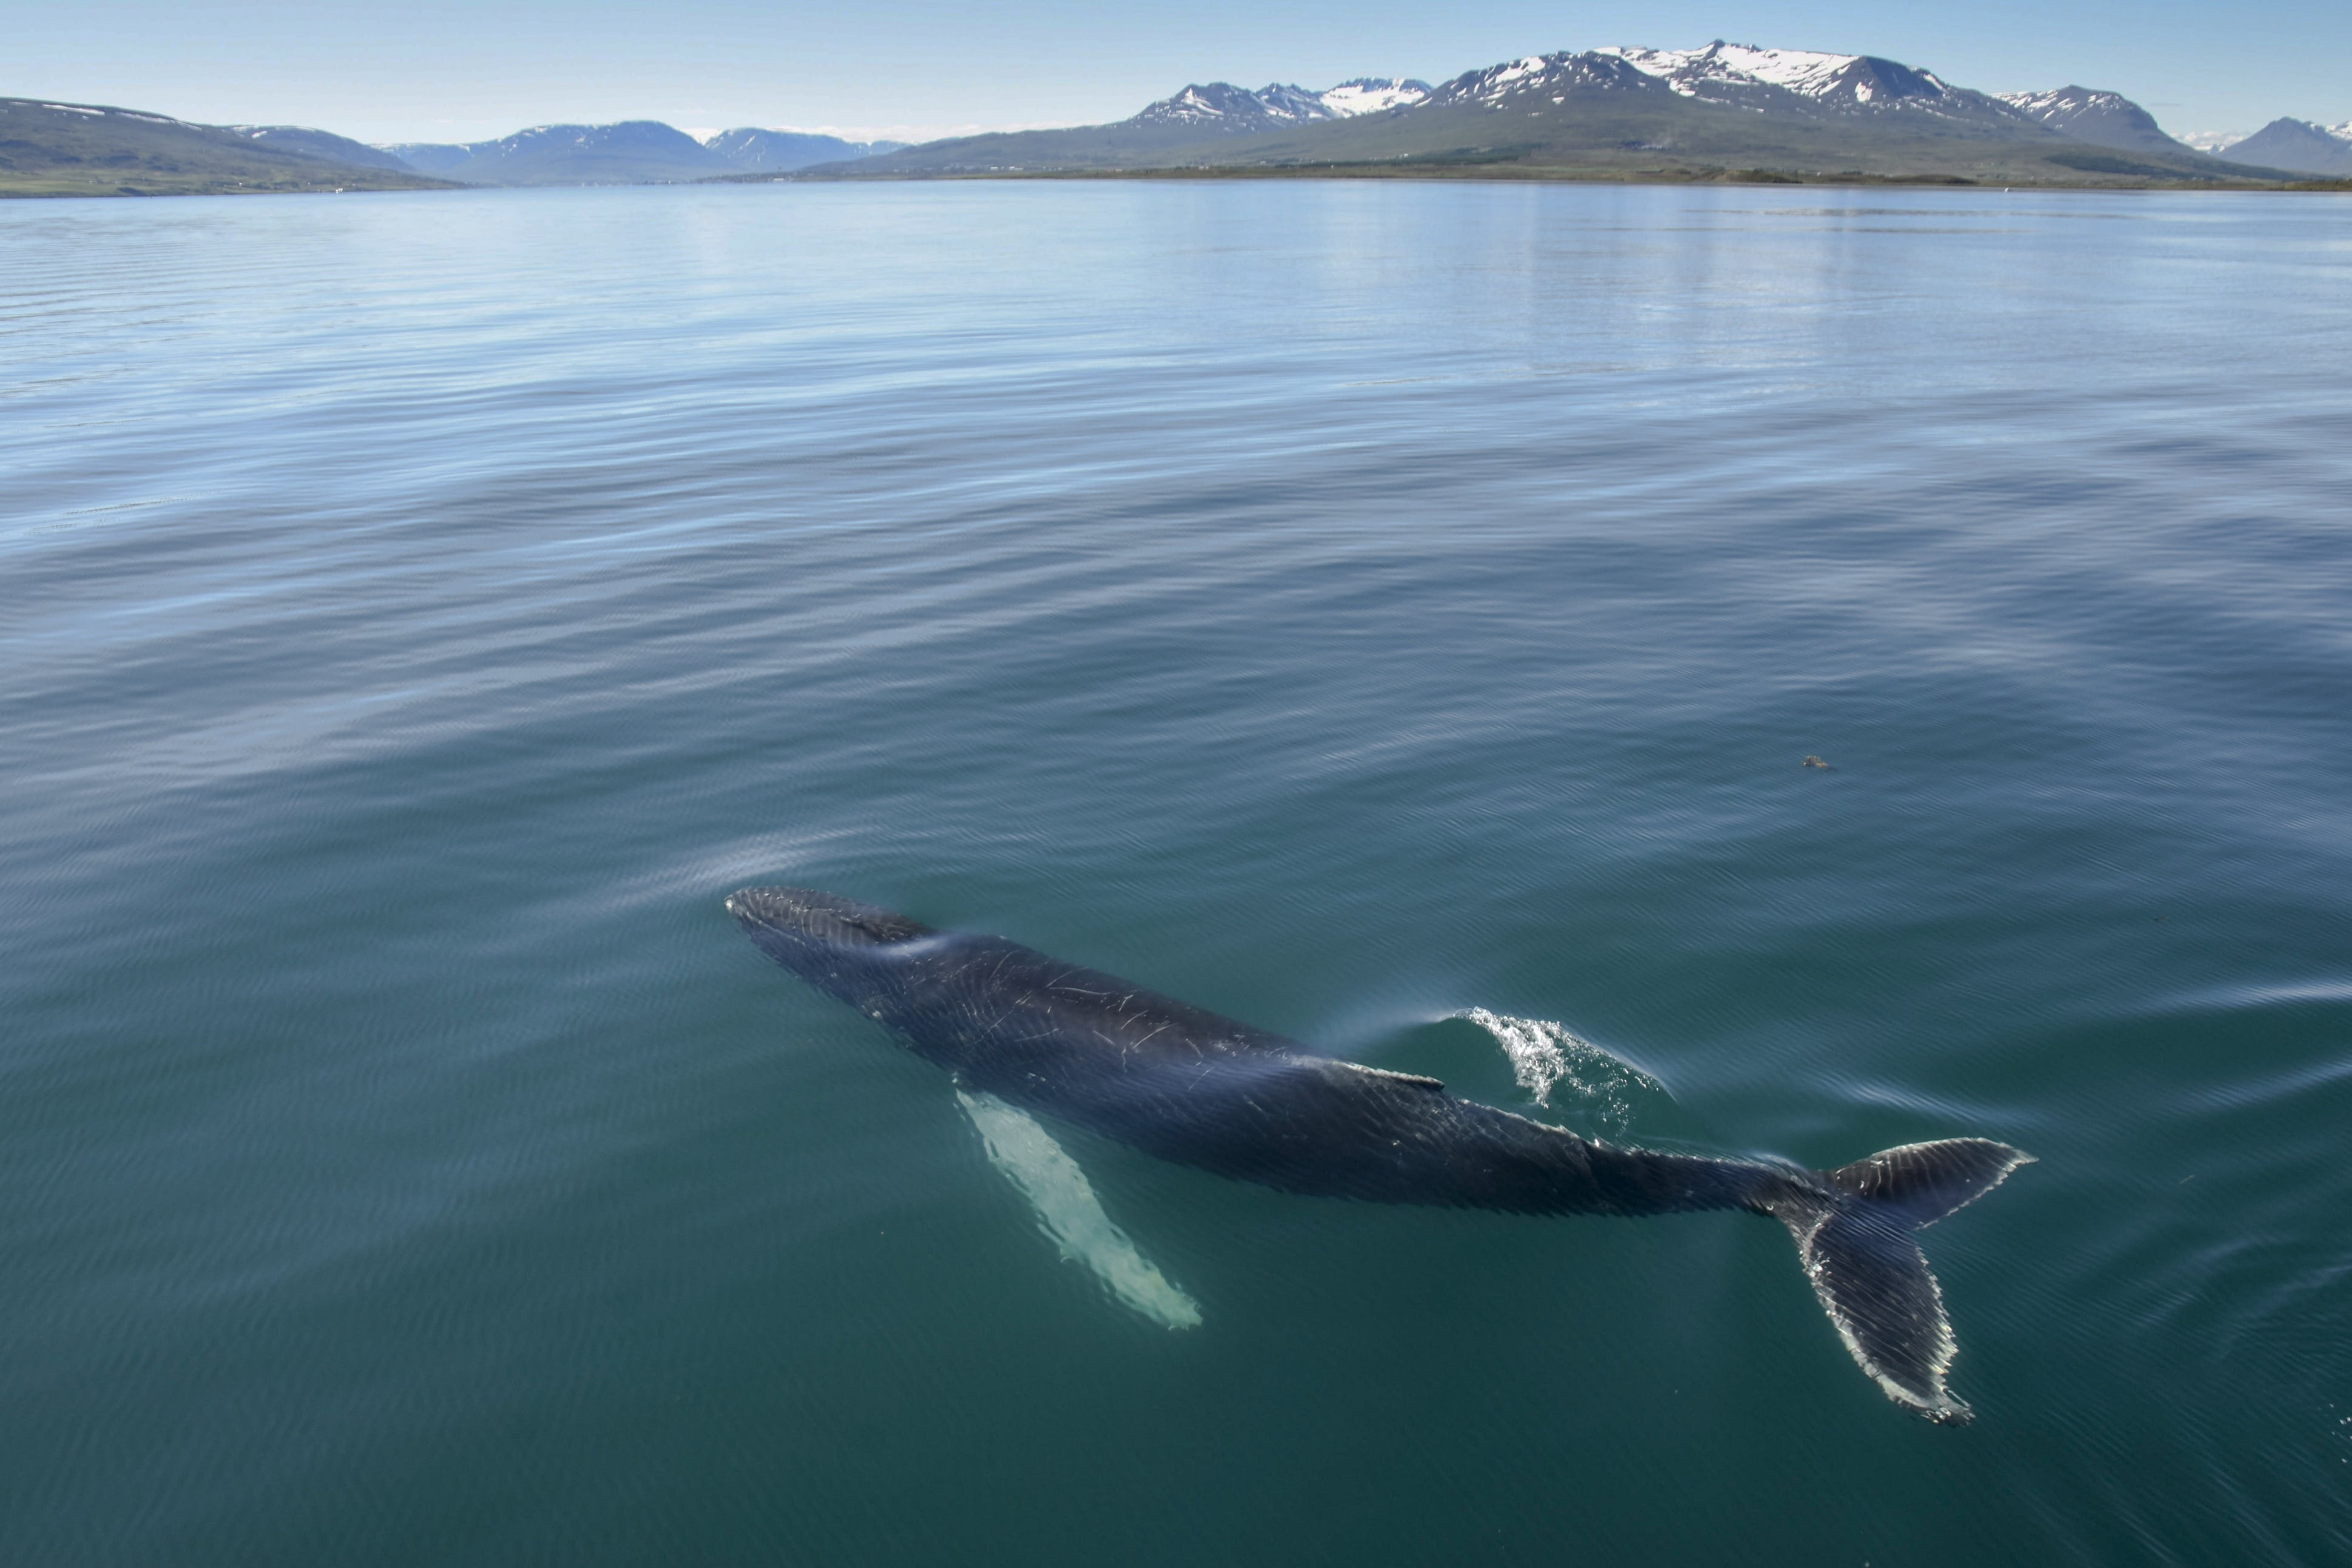 A majestic Humpback Whale rises to the surface of a fjord in north Iceland.